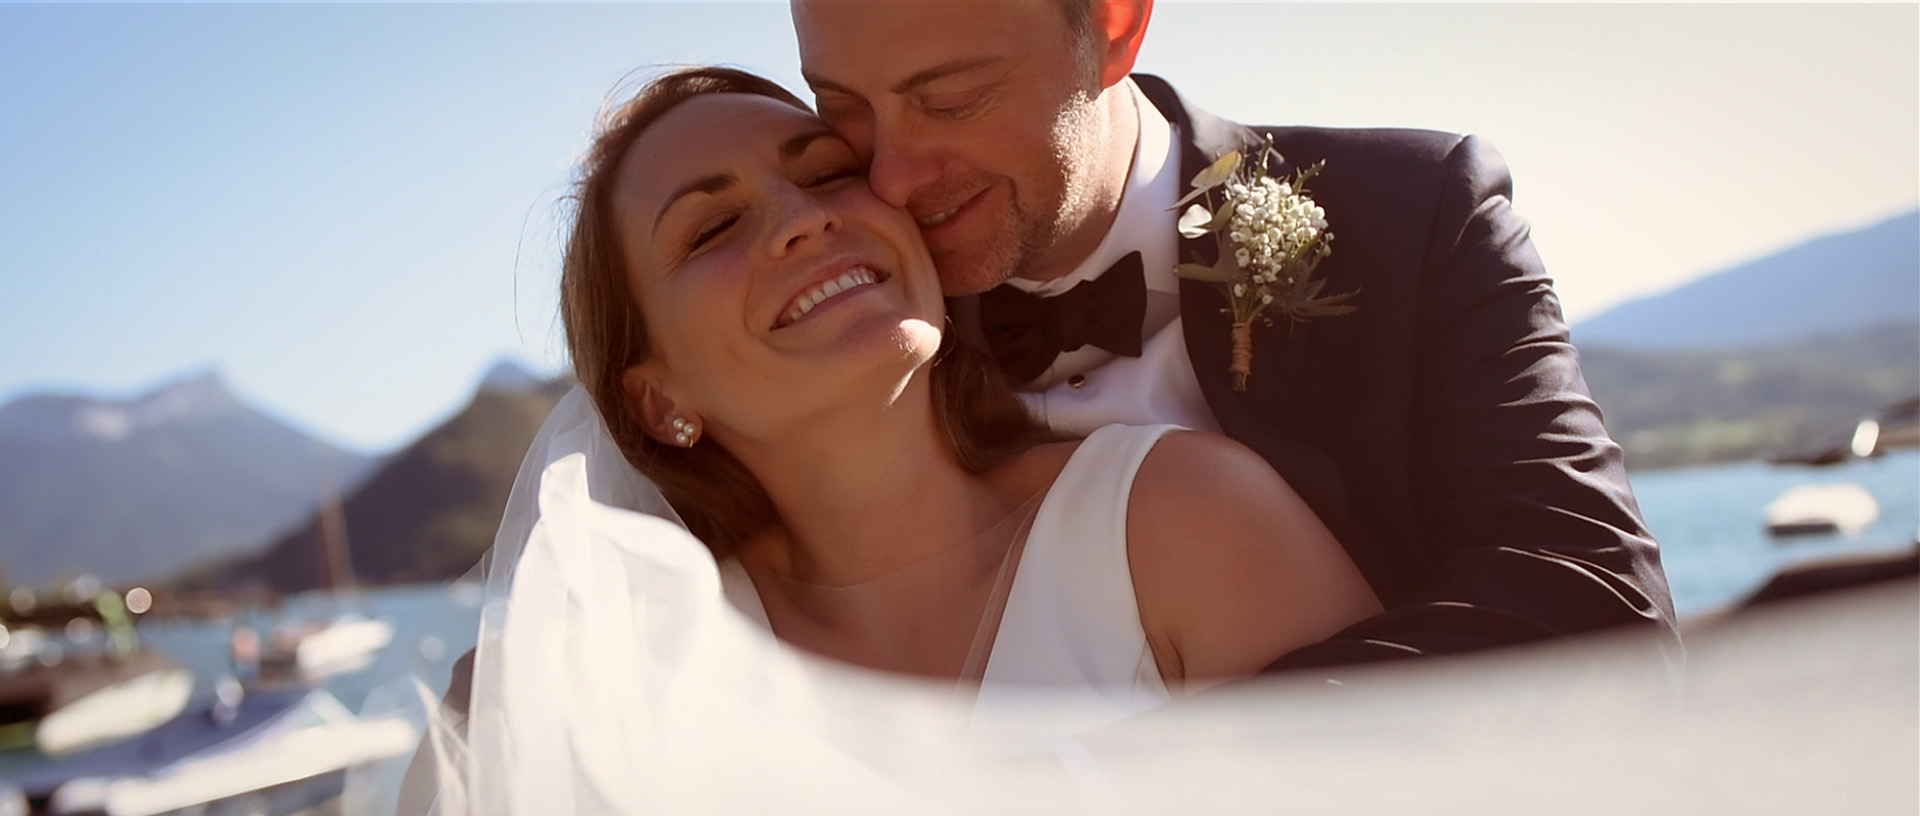 wedding videographer - Elopement Lake Annecy - Hôtel Yoann Conte - Destination wedding France